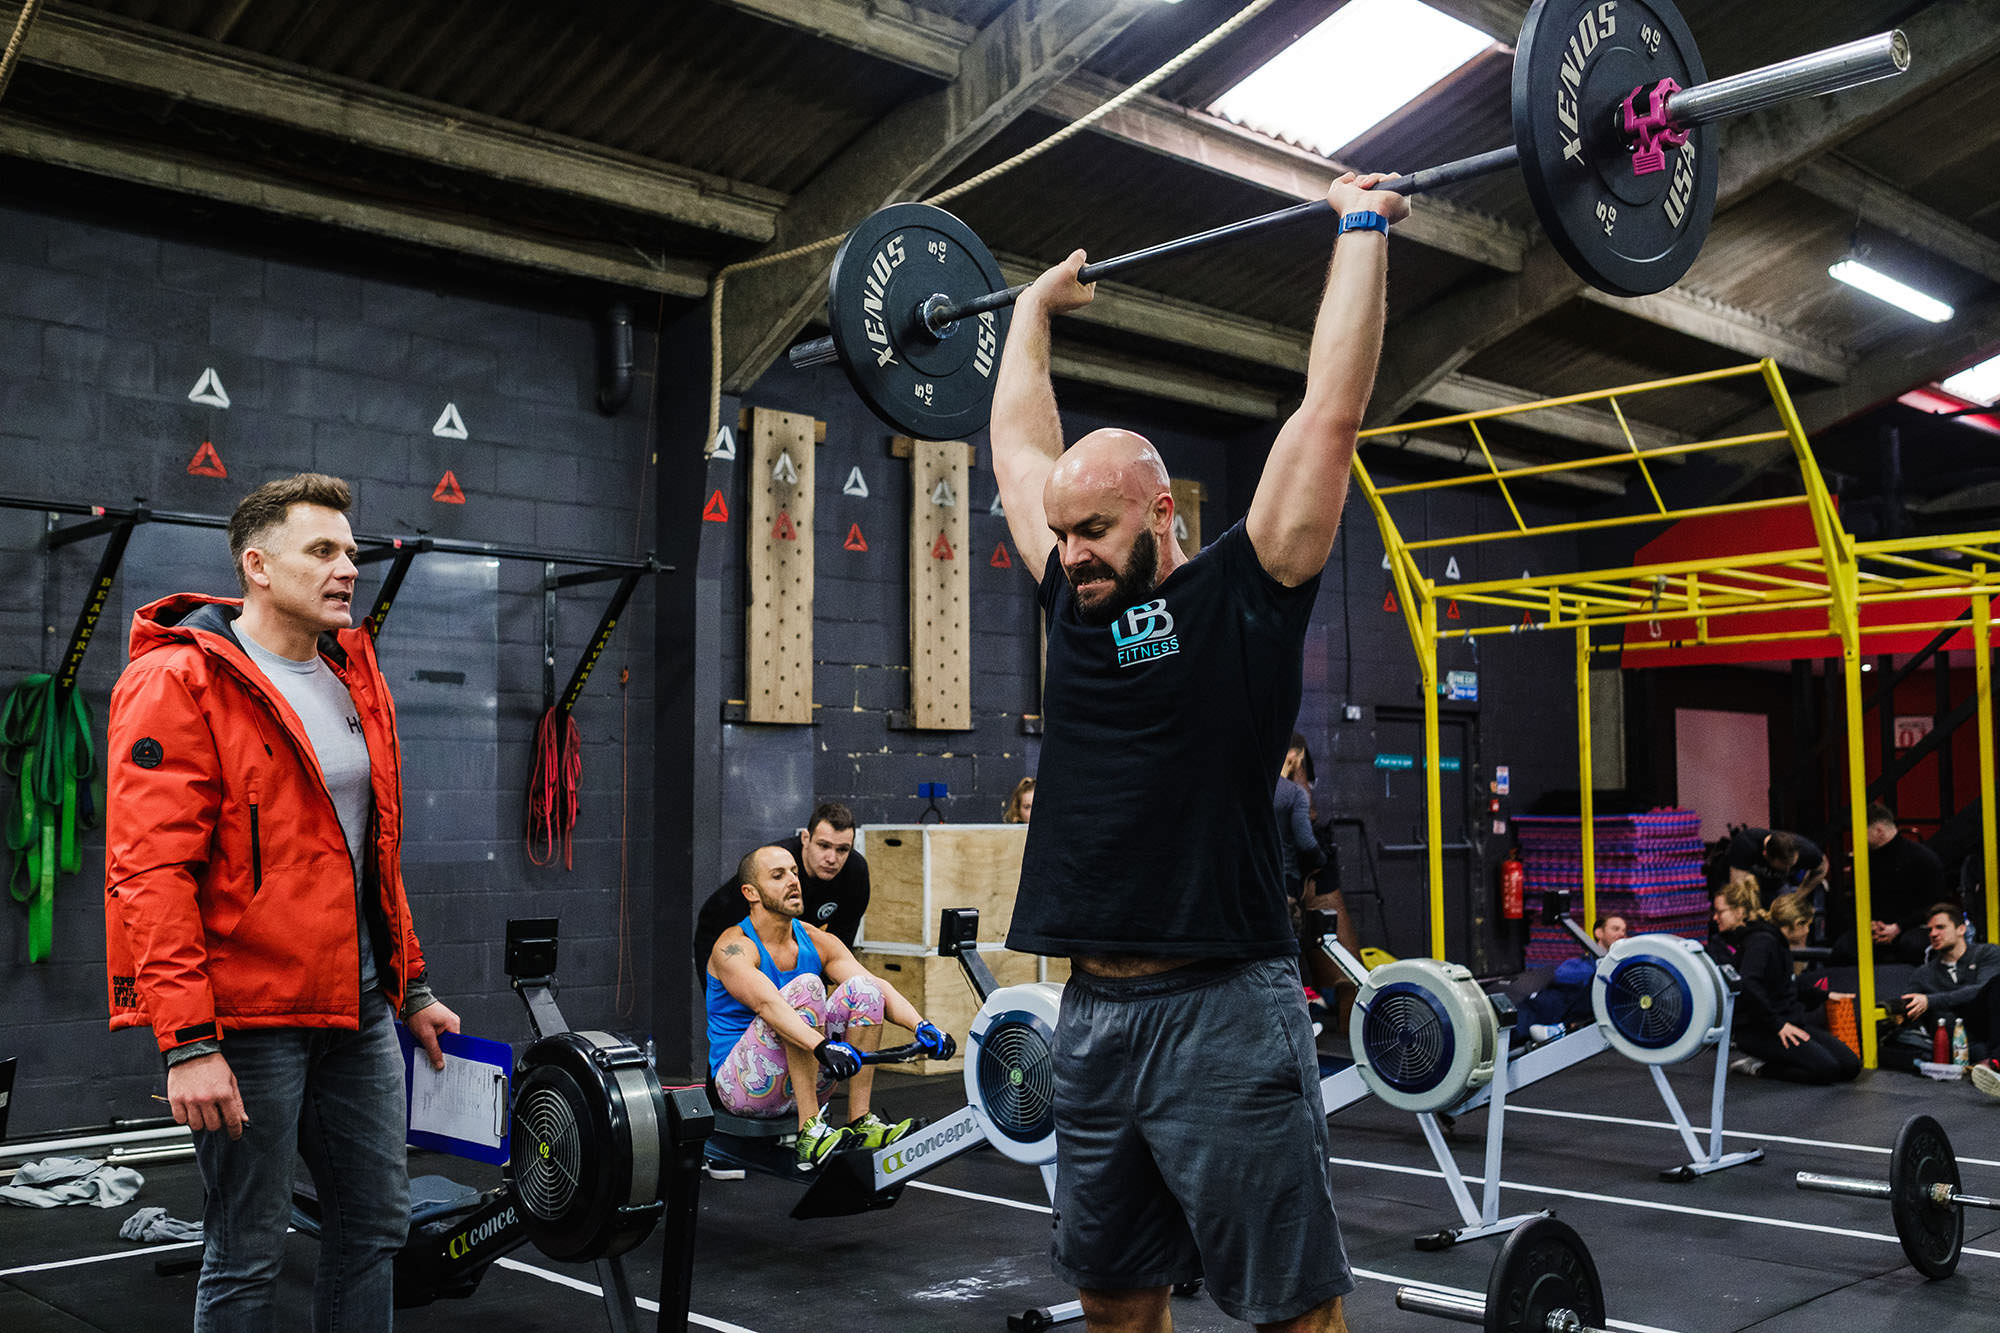 Crossfit reebok throwdown athlete